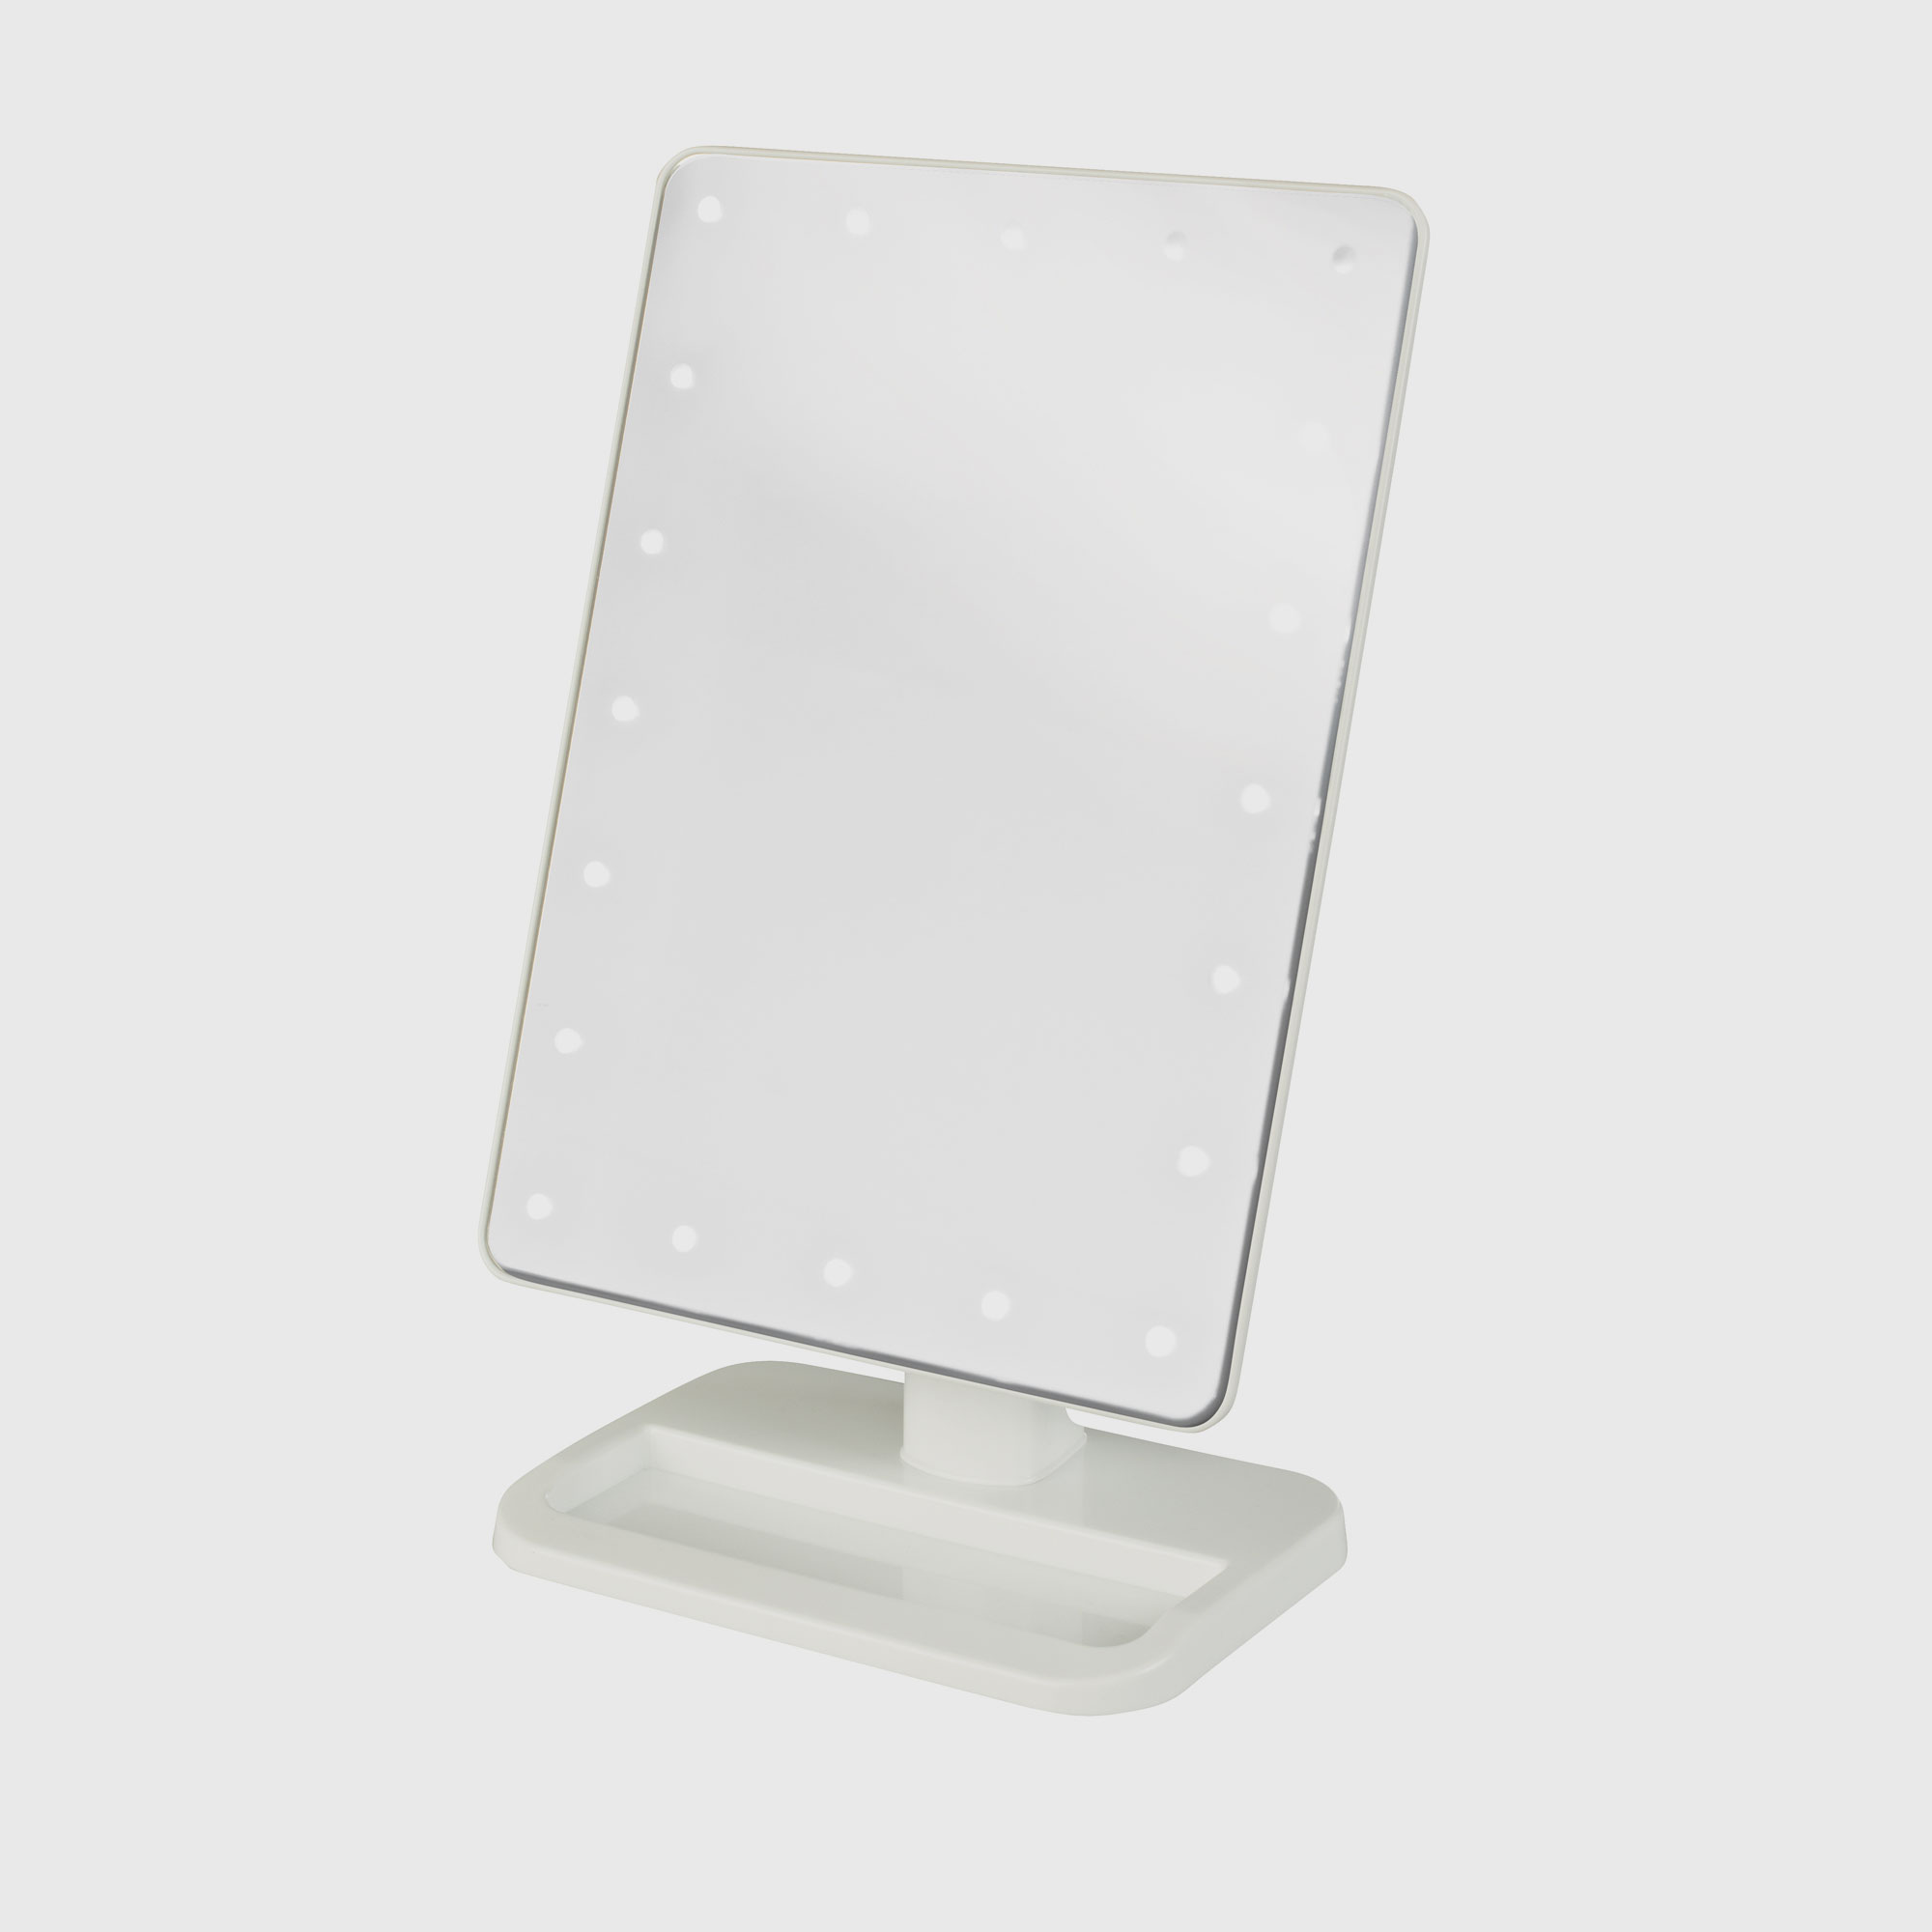 Jerdon Js811w Led Lighted Tabletop Makeup Mirror 1x 10x